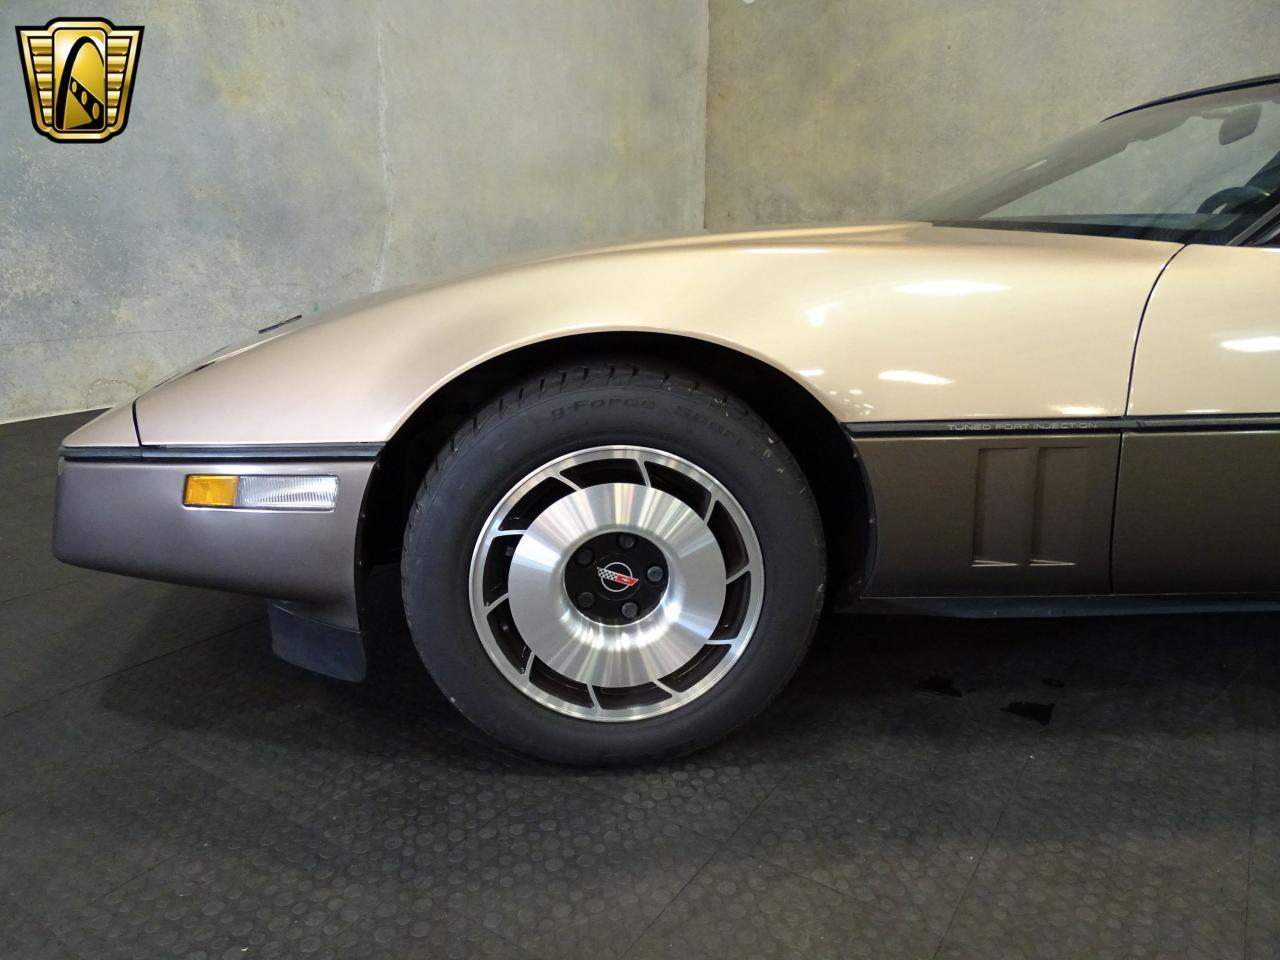 Large Picture of 1985 Chevrolet Corvette located in Ruskin Florida - $15,995.00 - L3PW